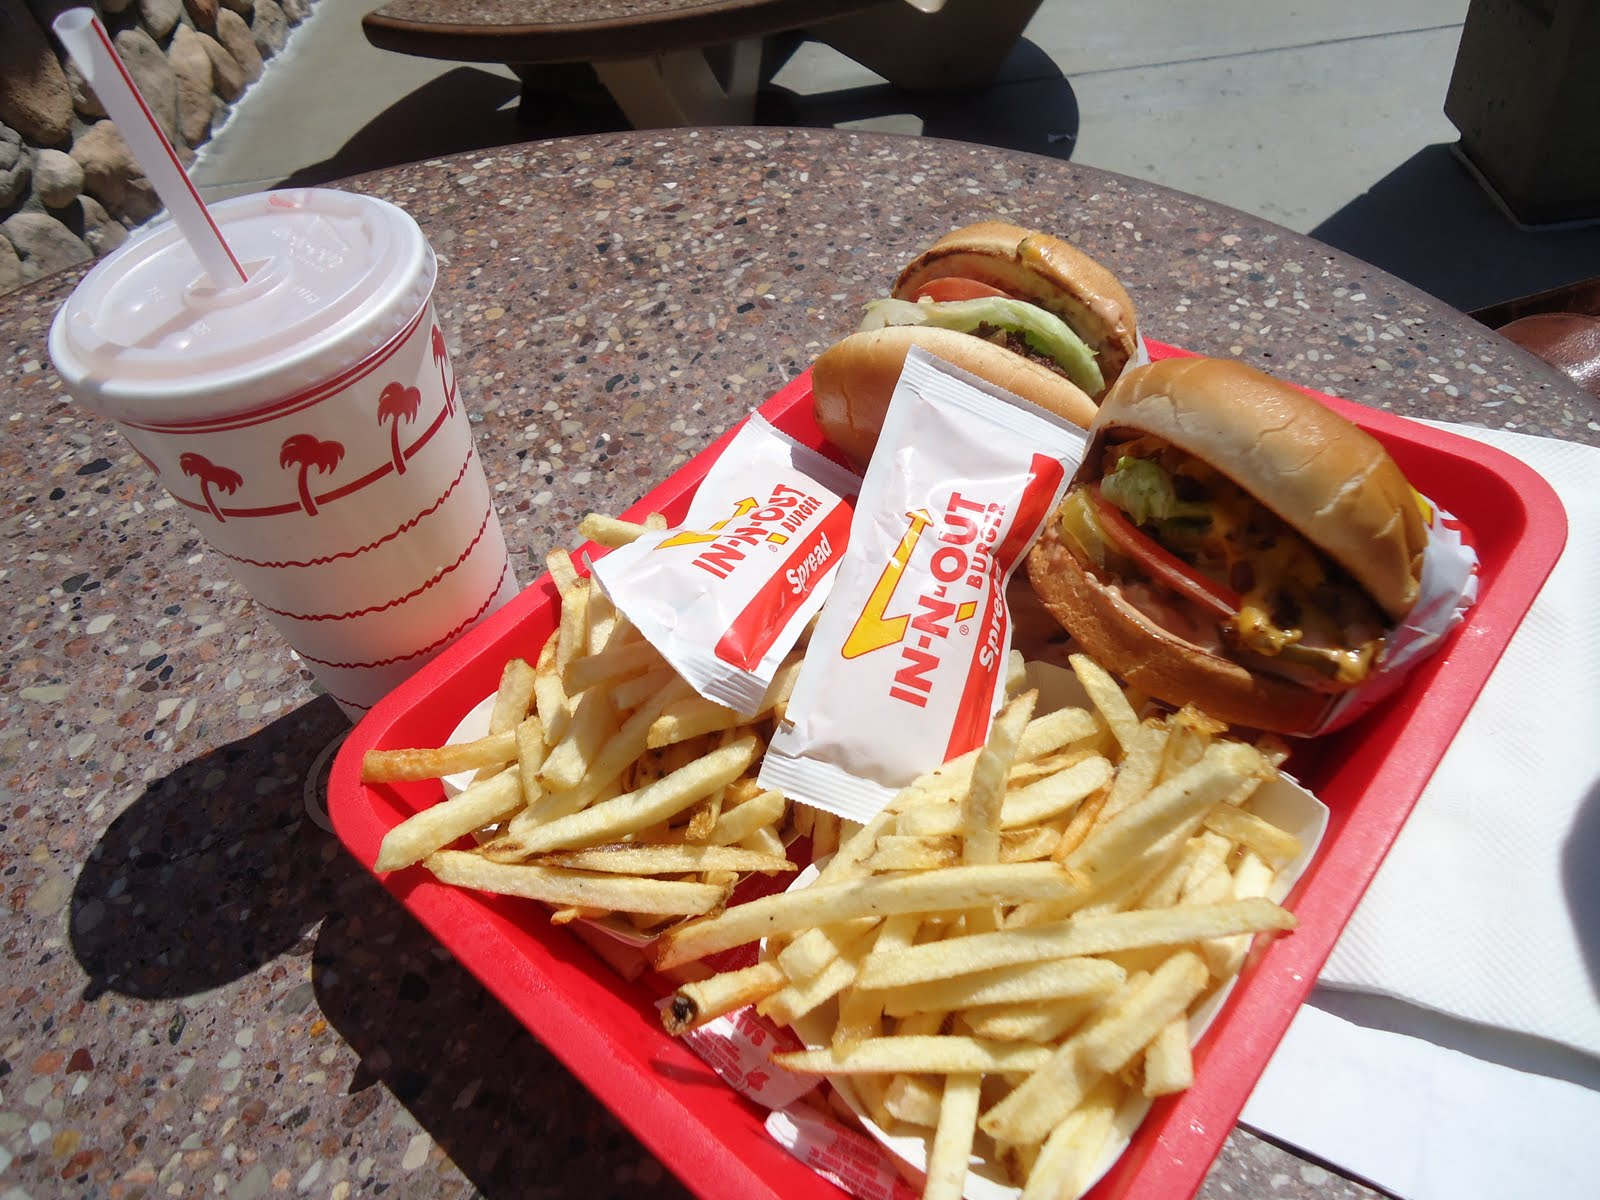 In and Out baby! Mmmm...with extra special sauce = deliciousness.